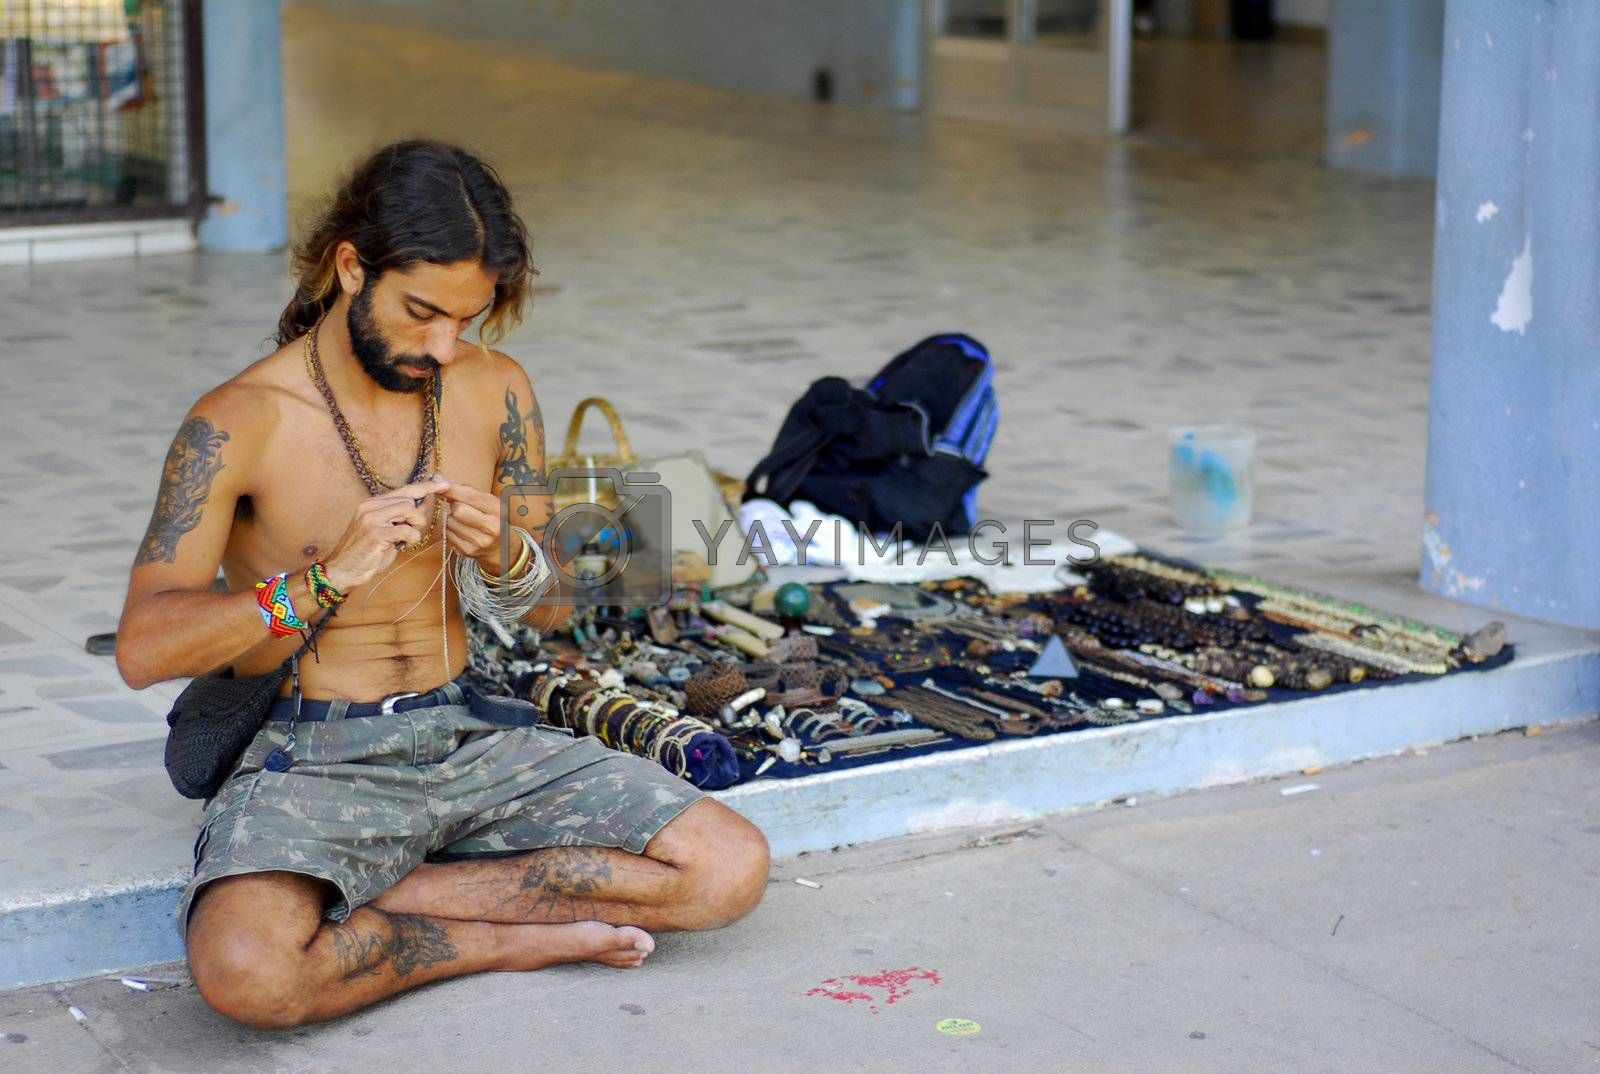 A hippie working on his crafts sitting on the curb